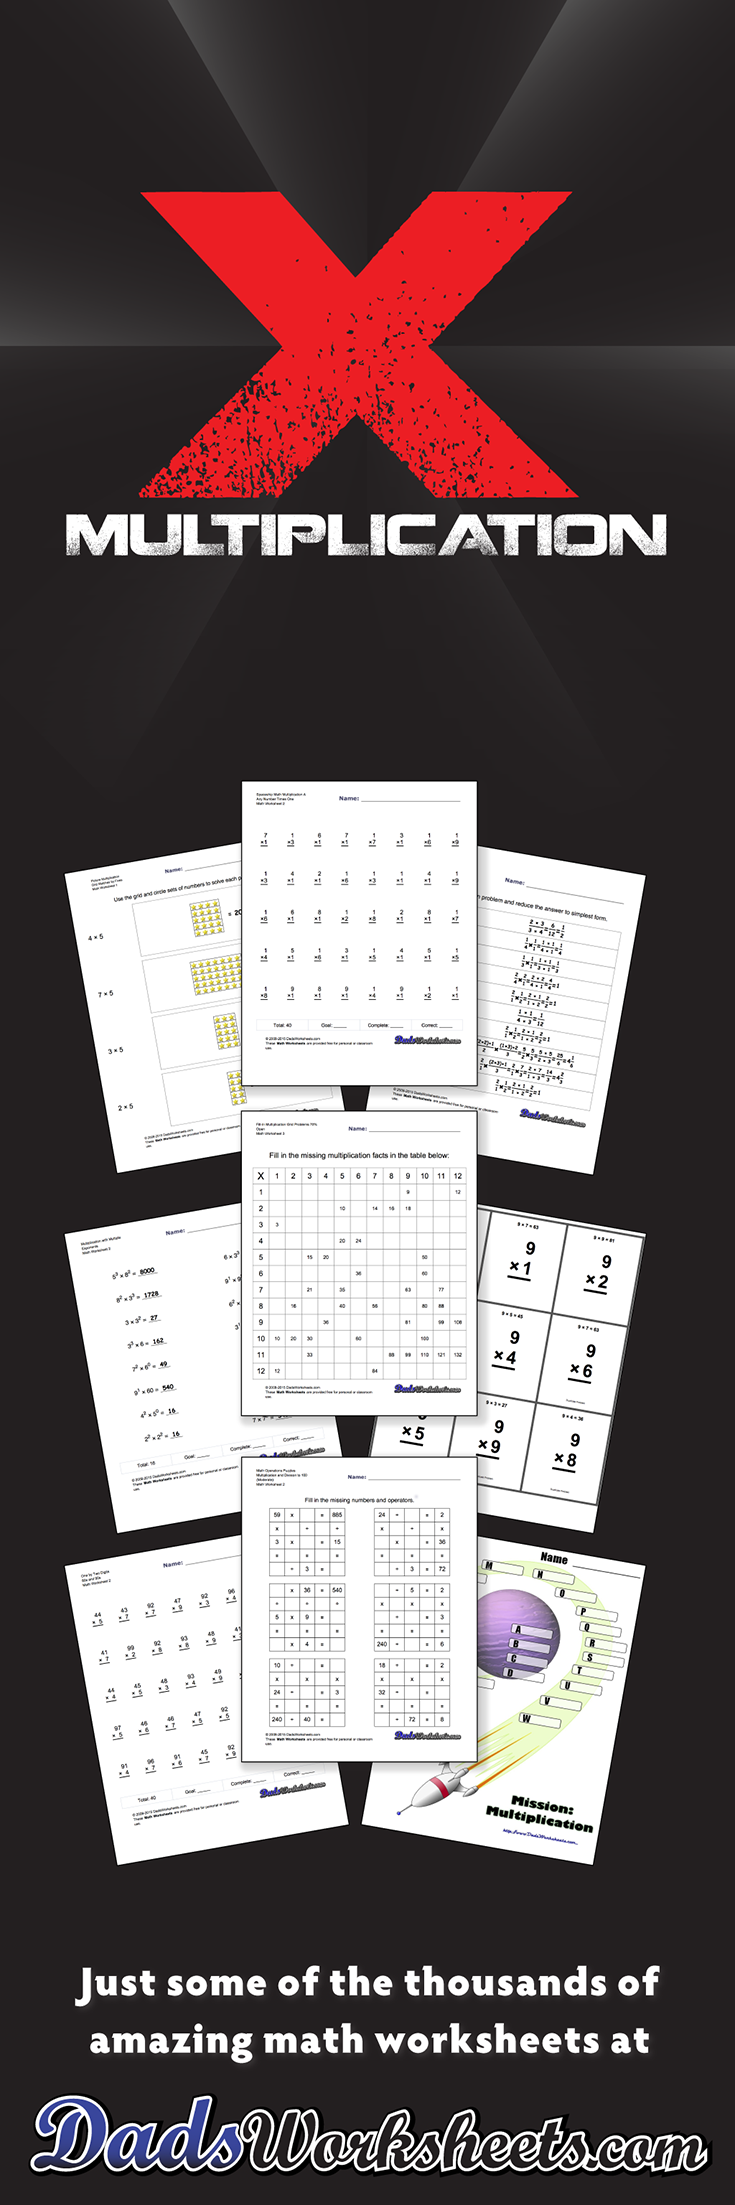 784 Multiplication Worksheets for You to Print Right Now – Base Ten Multiplication Worksheets